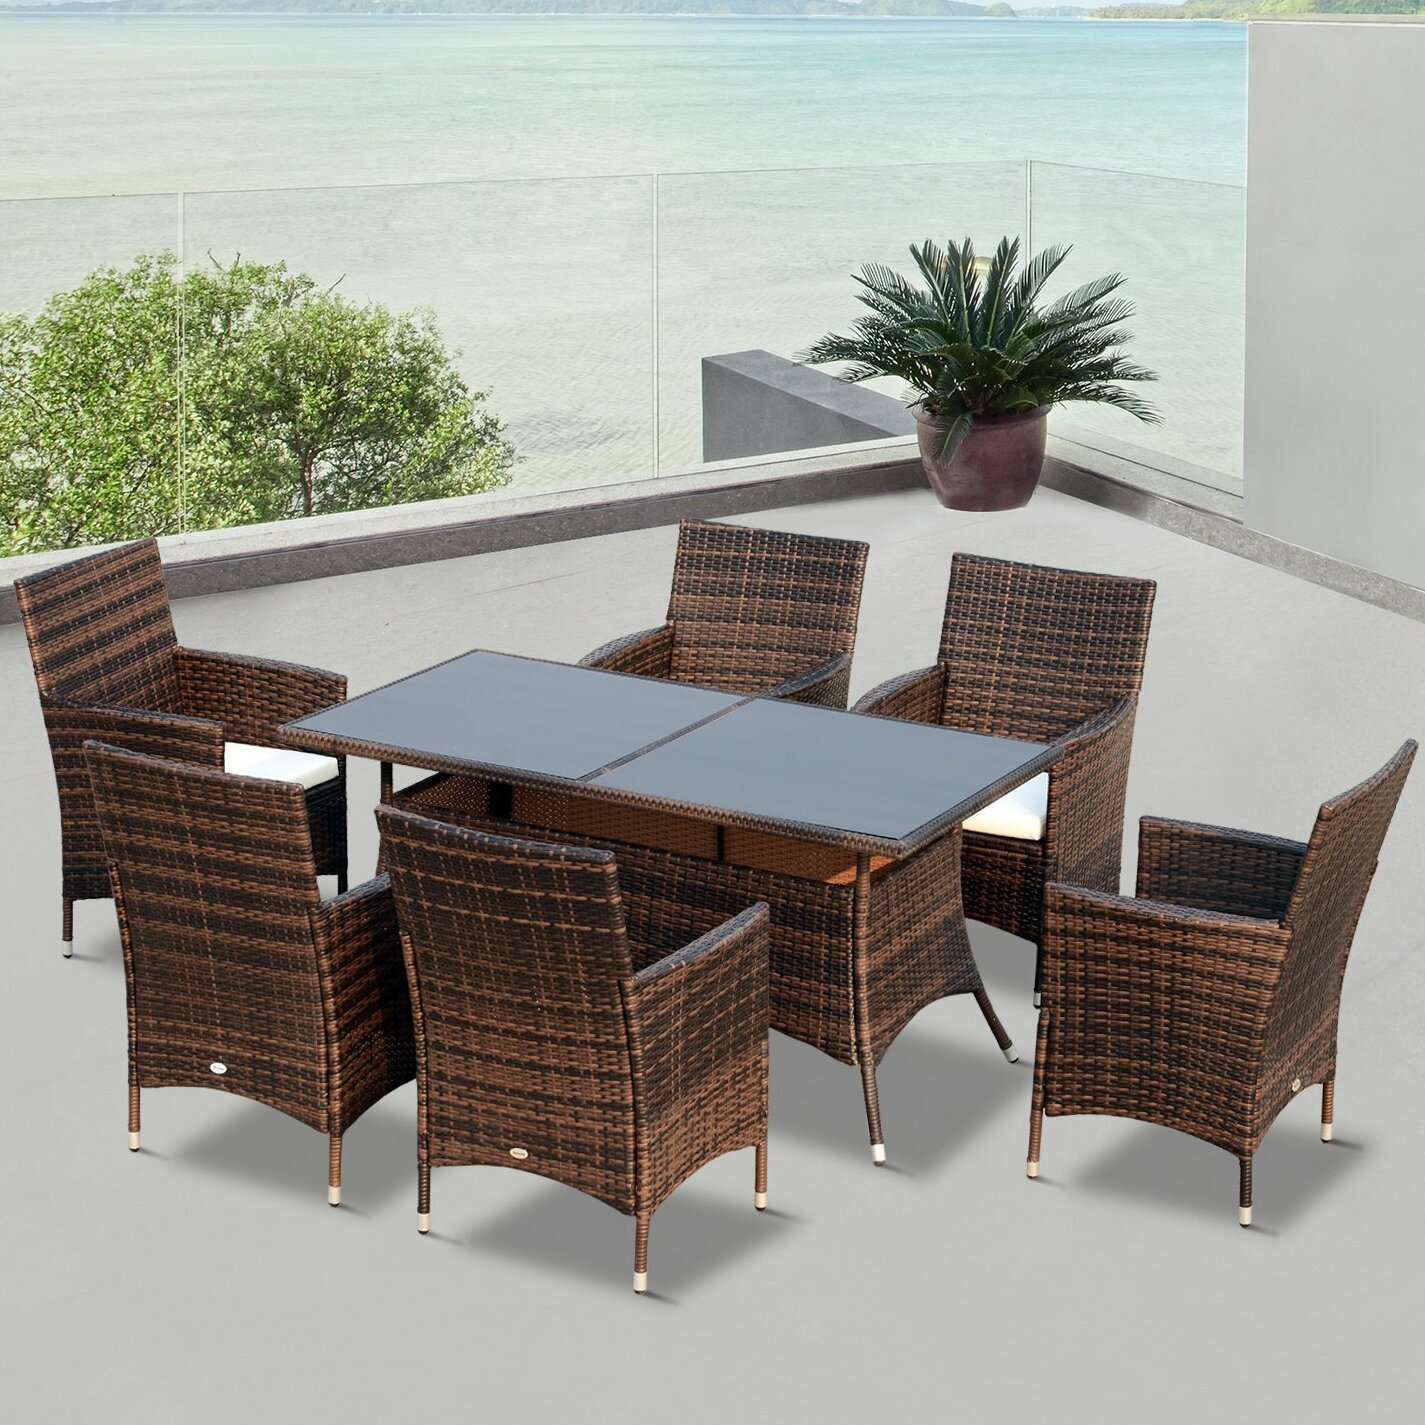 Outsunny 6 Seater Dining Set With Cushions U0026 Reviews | Wayfair.co.uk